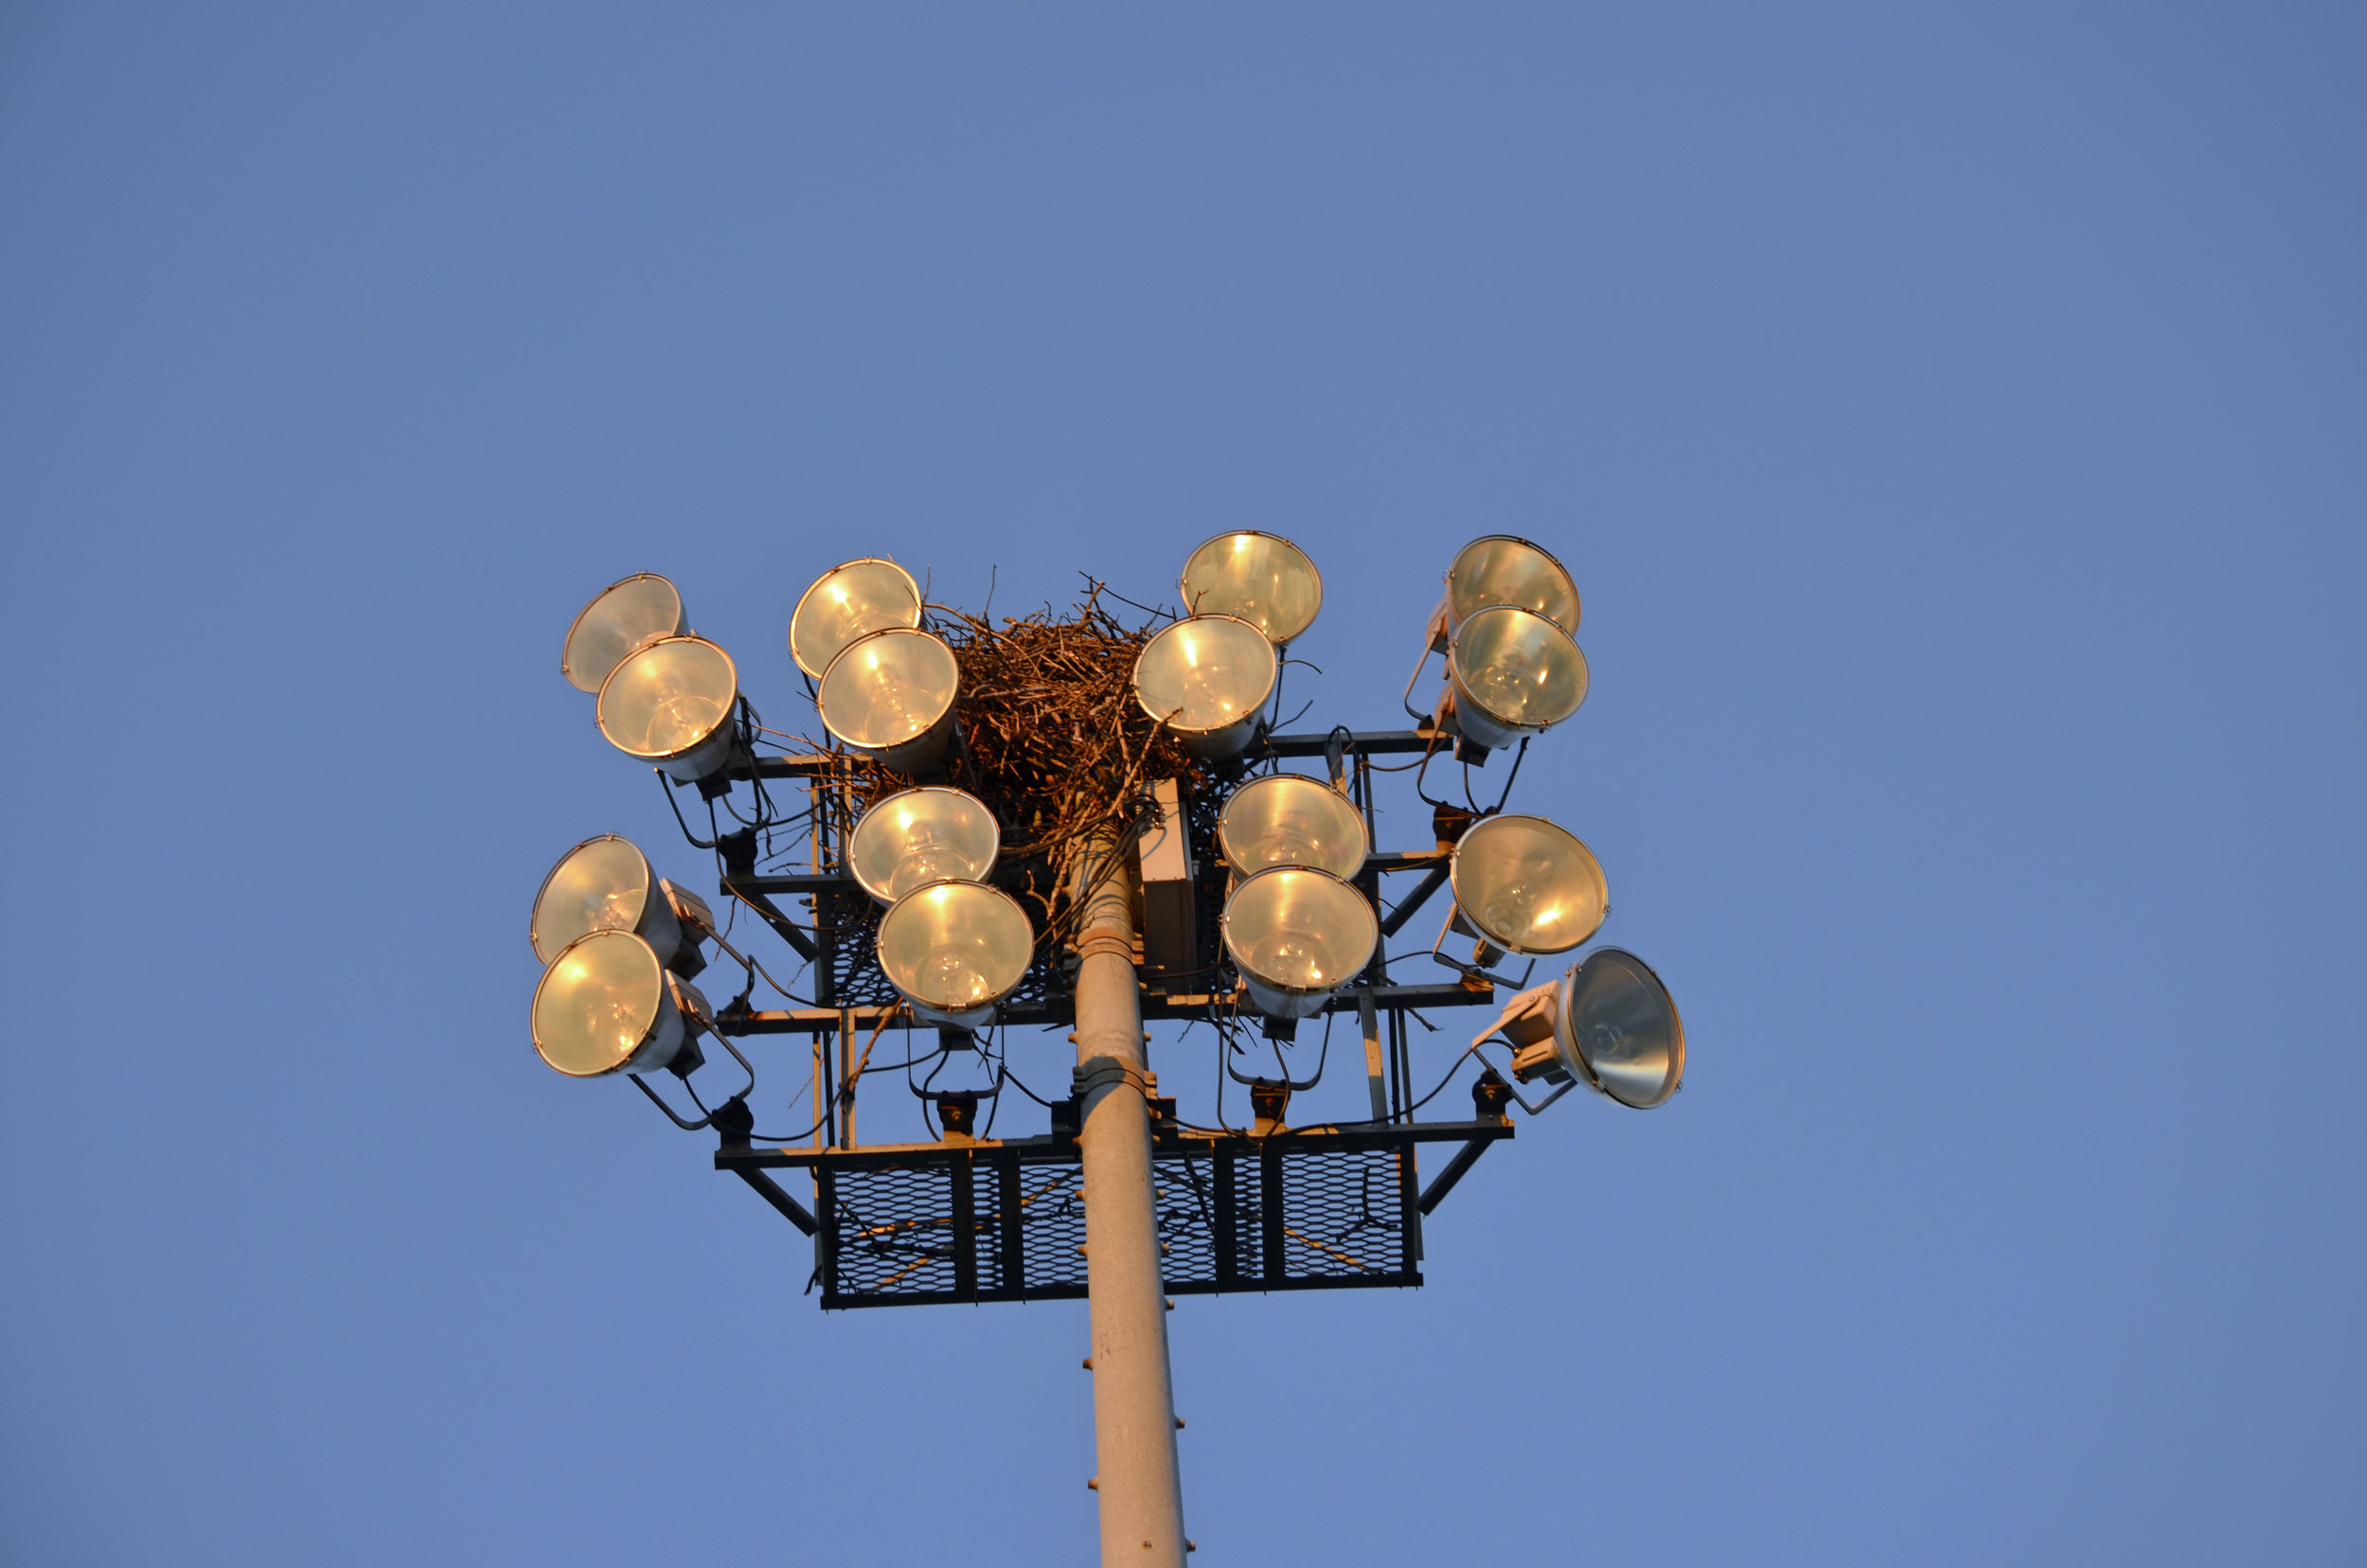 Osprey nesting on the lights at the Pardeeville High School athletic field. Photo by Mark Martin